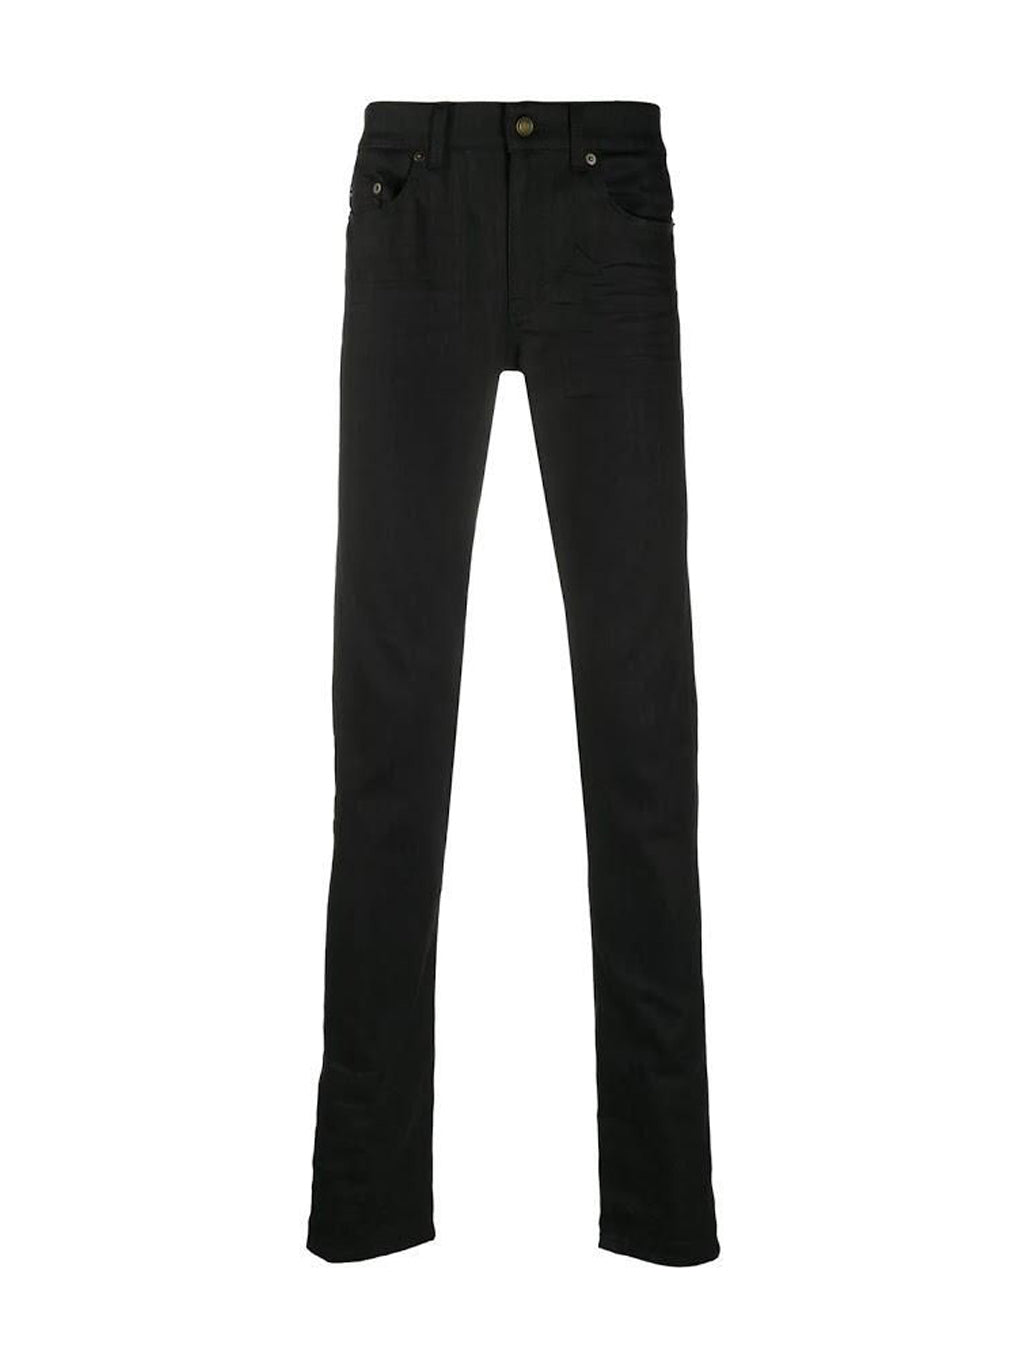 Black Skinny 5 Pockets Jeans